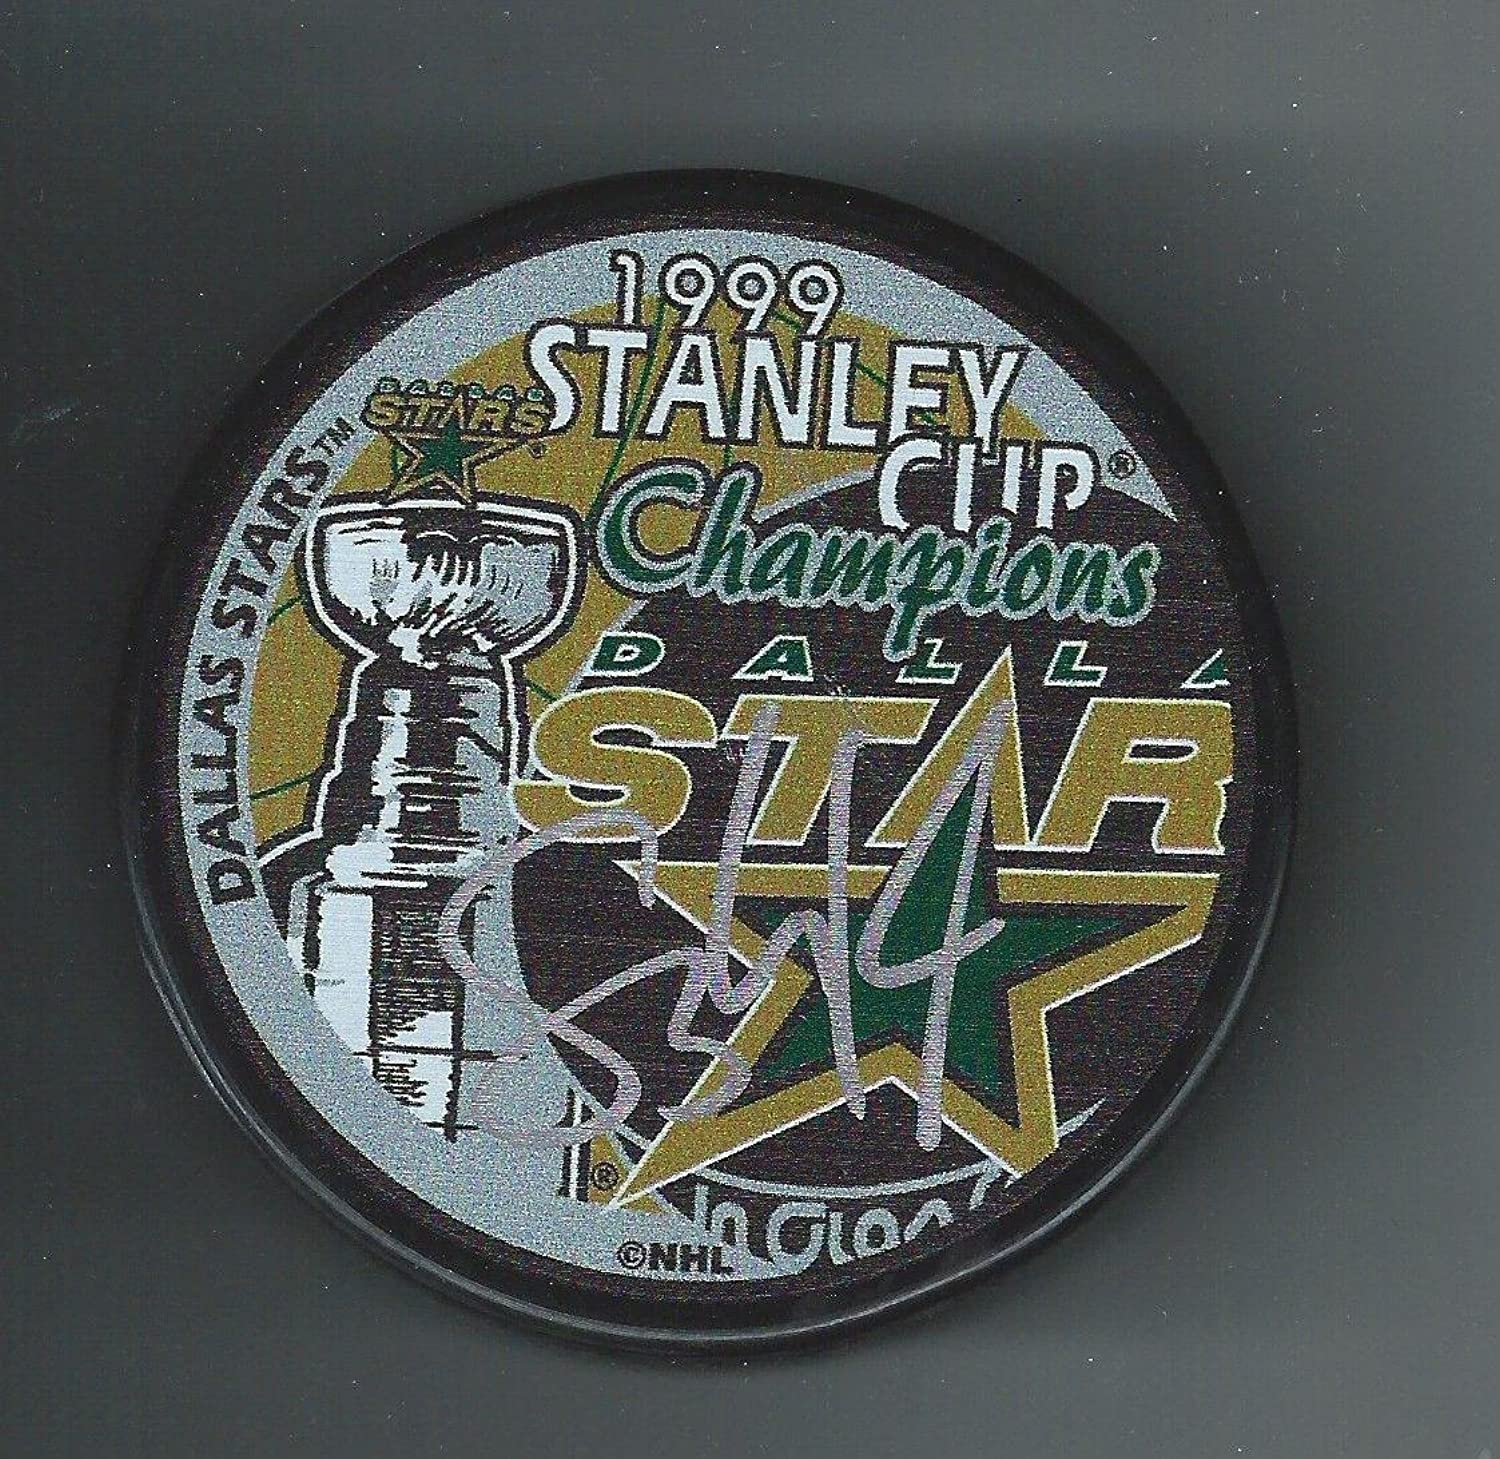 STU Barnes Signed Puck  1999 Stanley Cup Champions  Autographed NHL Pucks